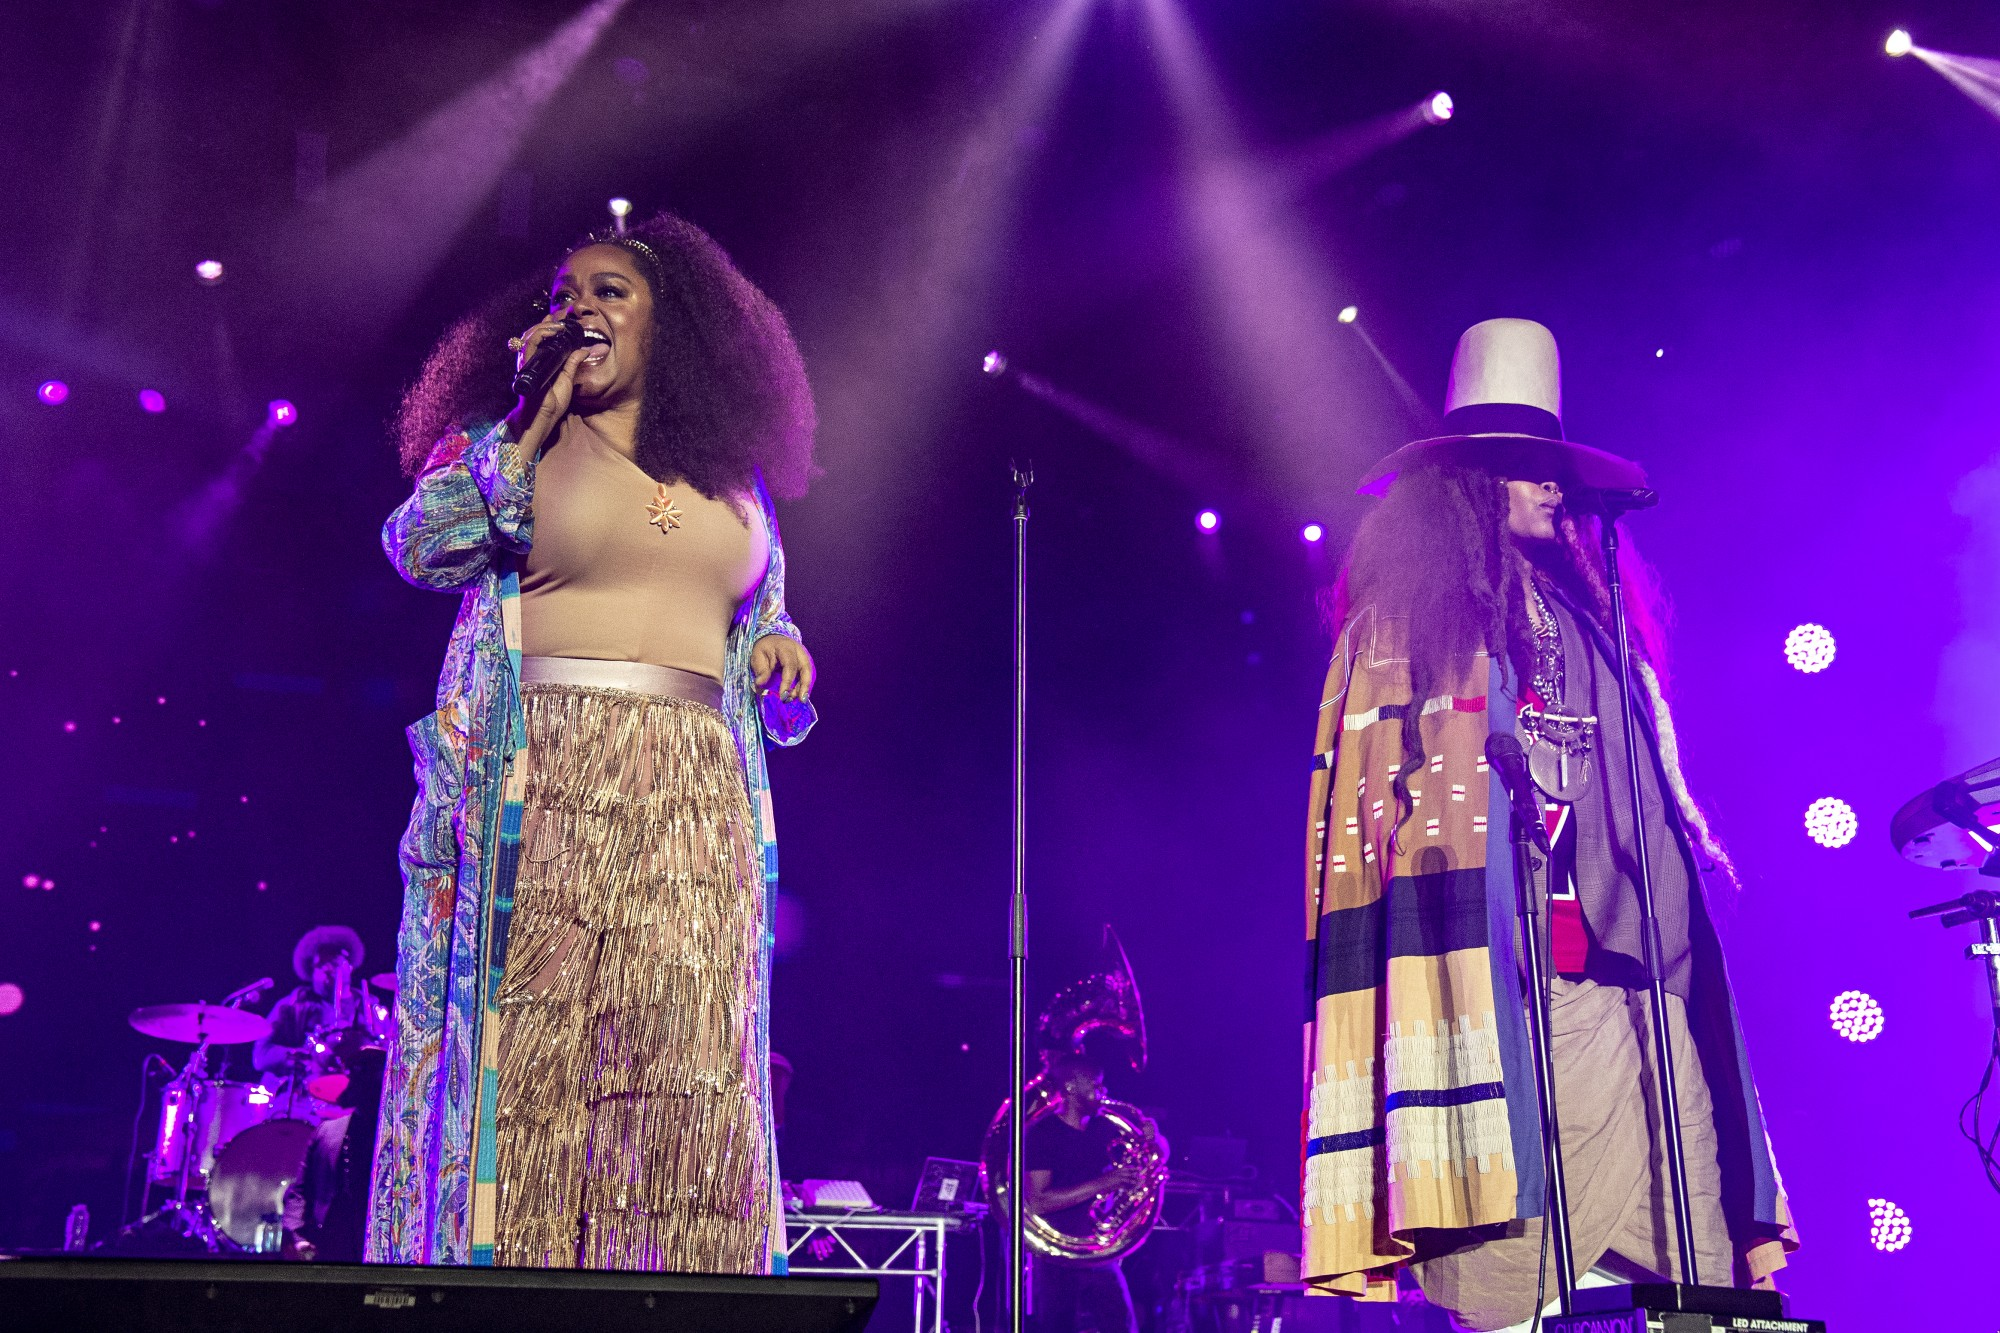 Erykah Badu & Jill Scott Face Off In Verzuz Battle On Instagram